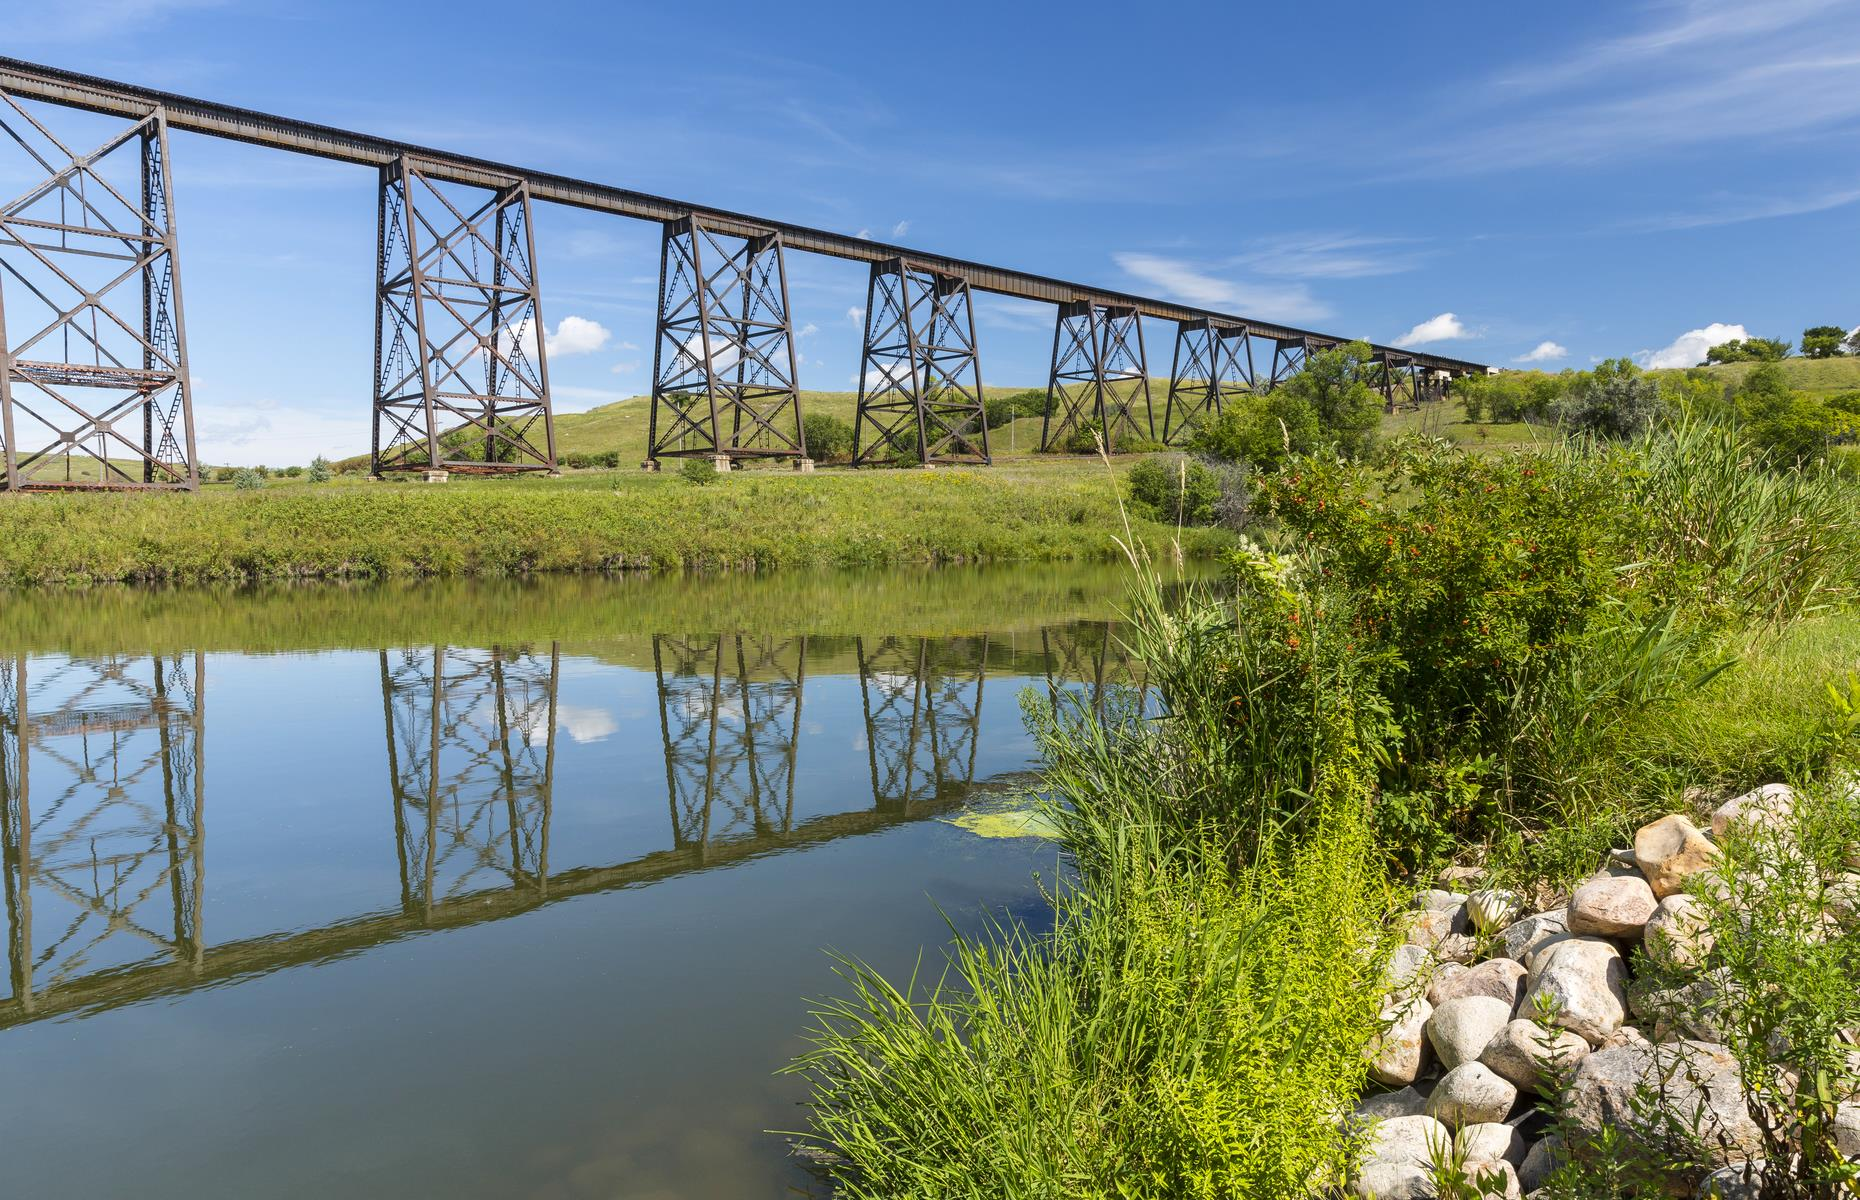 Slide 36 of 52: This historic railroad bridge could have been pulled straight from an old Western movie. It was completed more than a hundred years ago, in 1908, and beats an unswerving path across the Sheyenne River in Valley City. Held up to its 162-foot (49m) height by 30 hardy towers, the bridge was pivotal in the Second World War as supplies and soldiers were transported over the river in coast-to-coast journeys. It was closely guarded during the entire conflict.